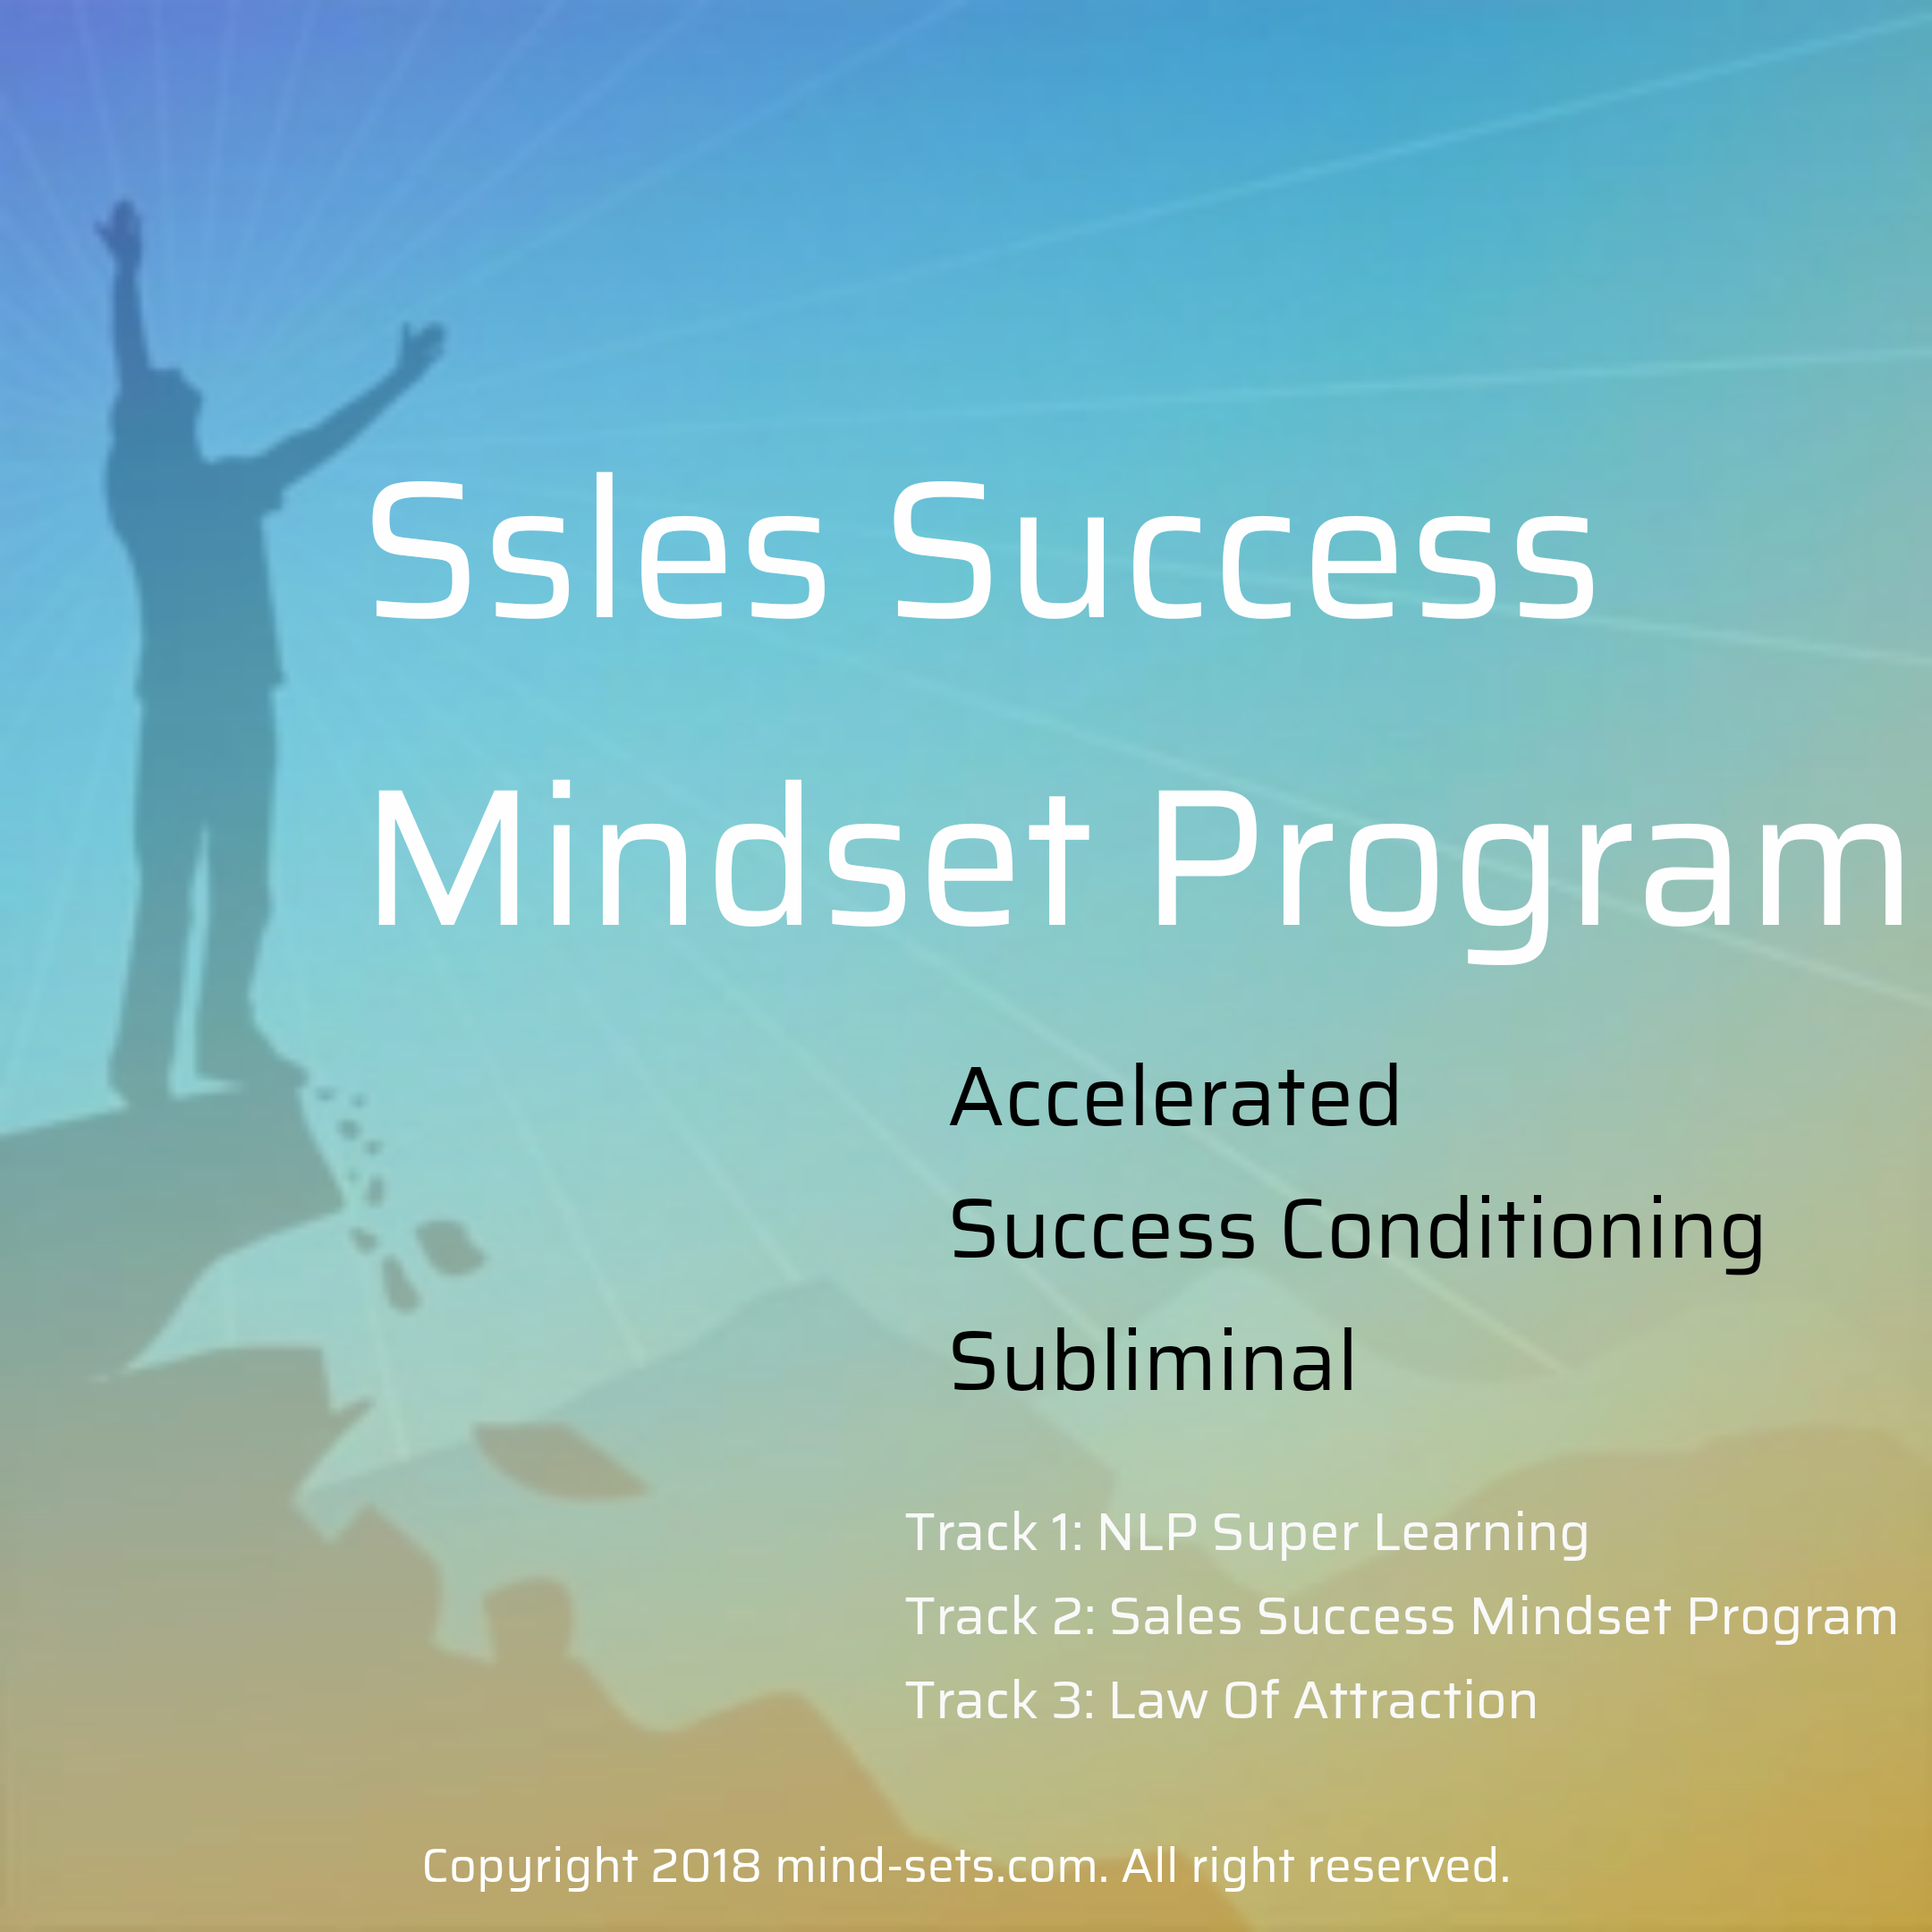 Sales Success Mindset Program